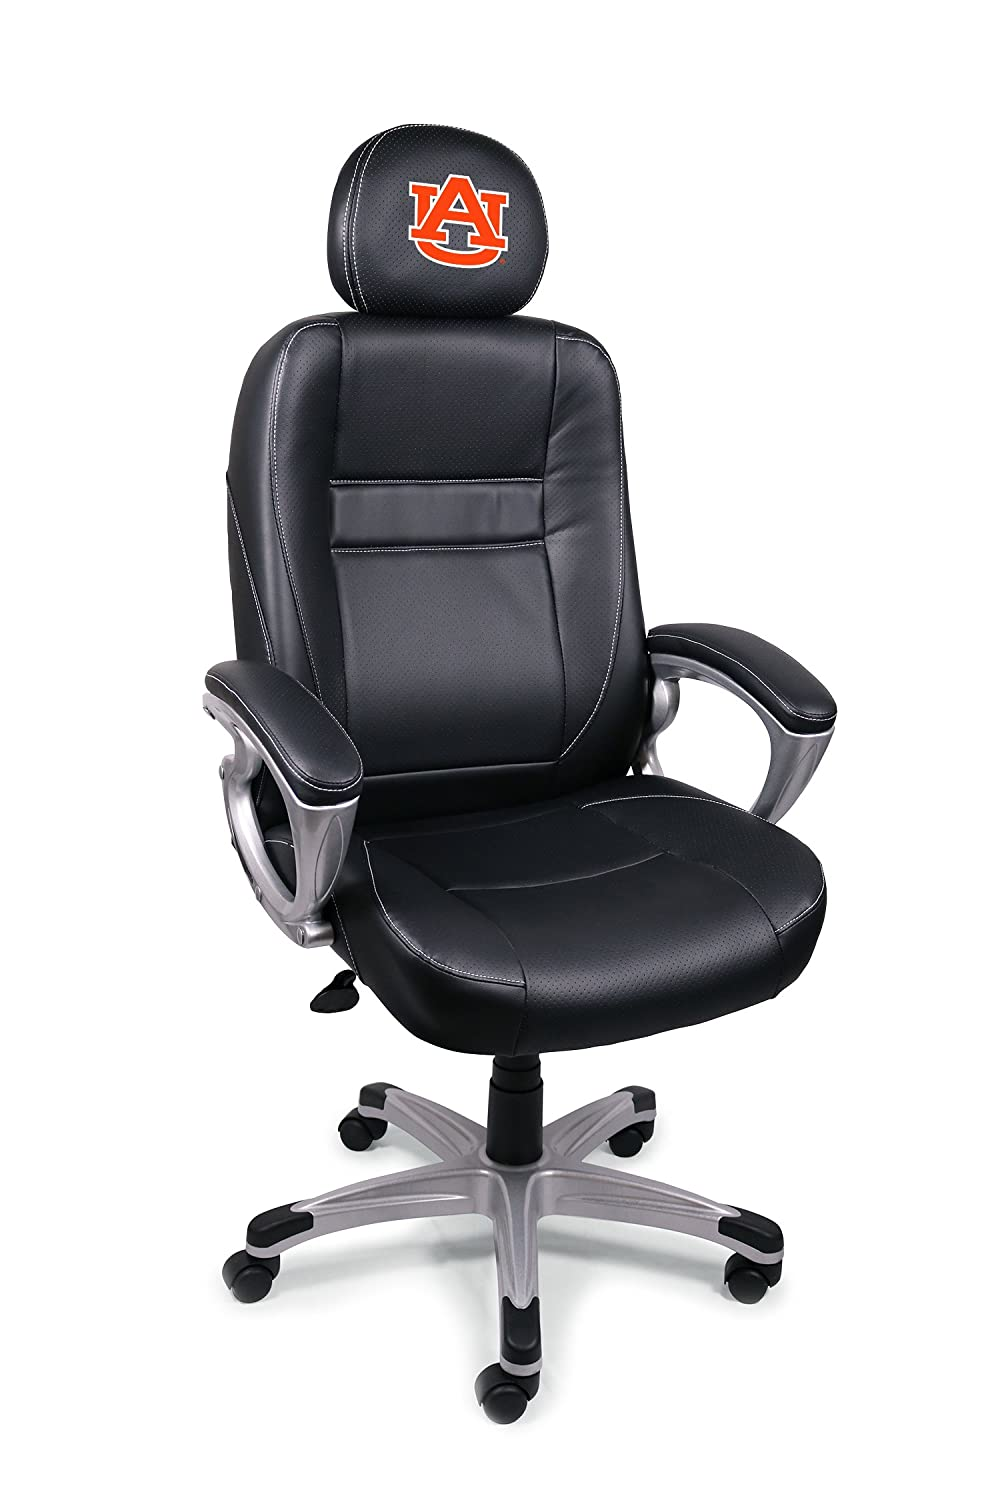 One color Wild Sports College Leather Office Chair